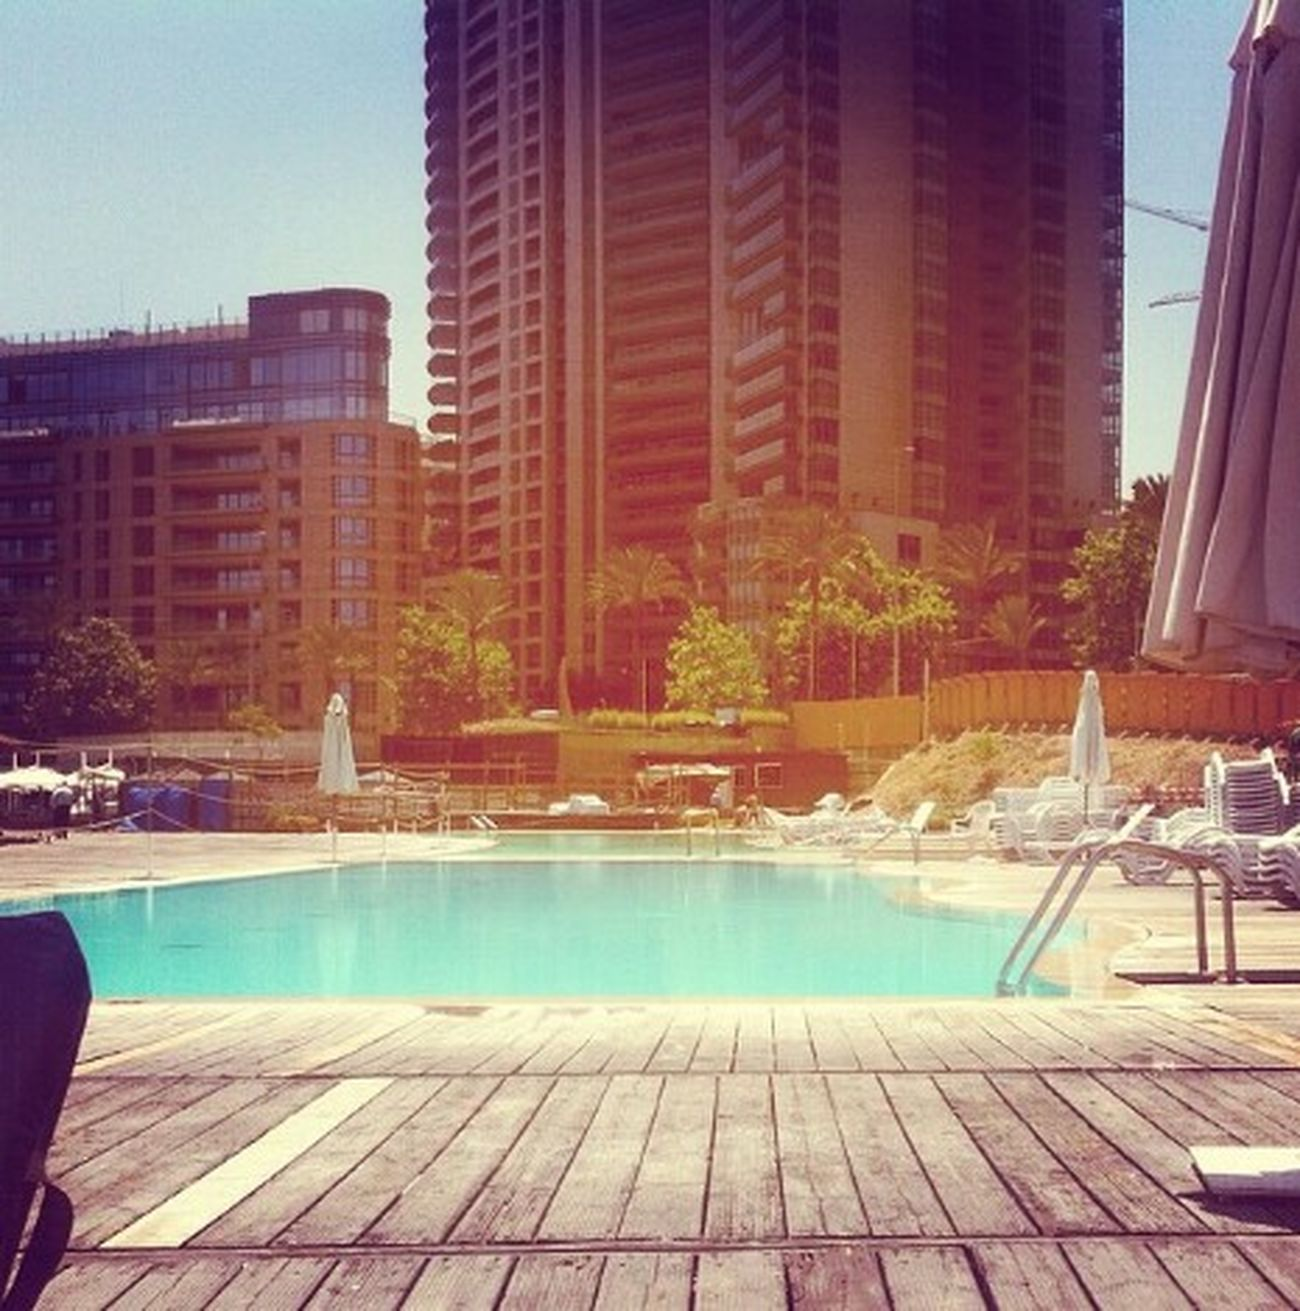 Swimming Pool Swimming Enjoy ✌ Escaping From The Heat